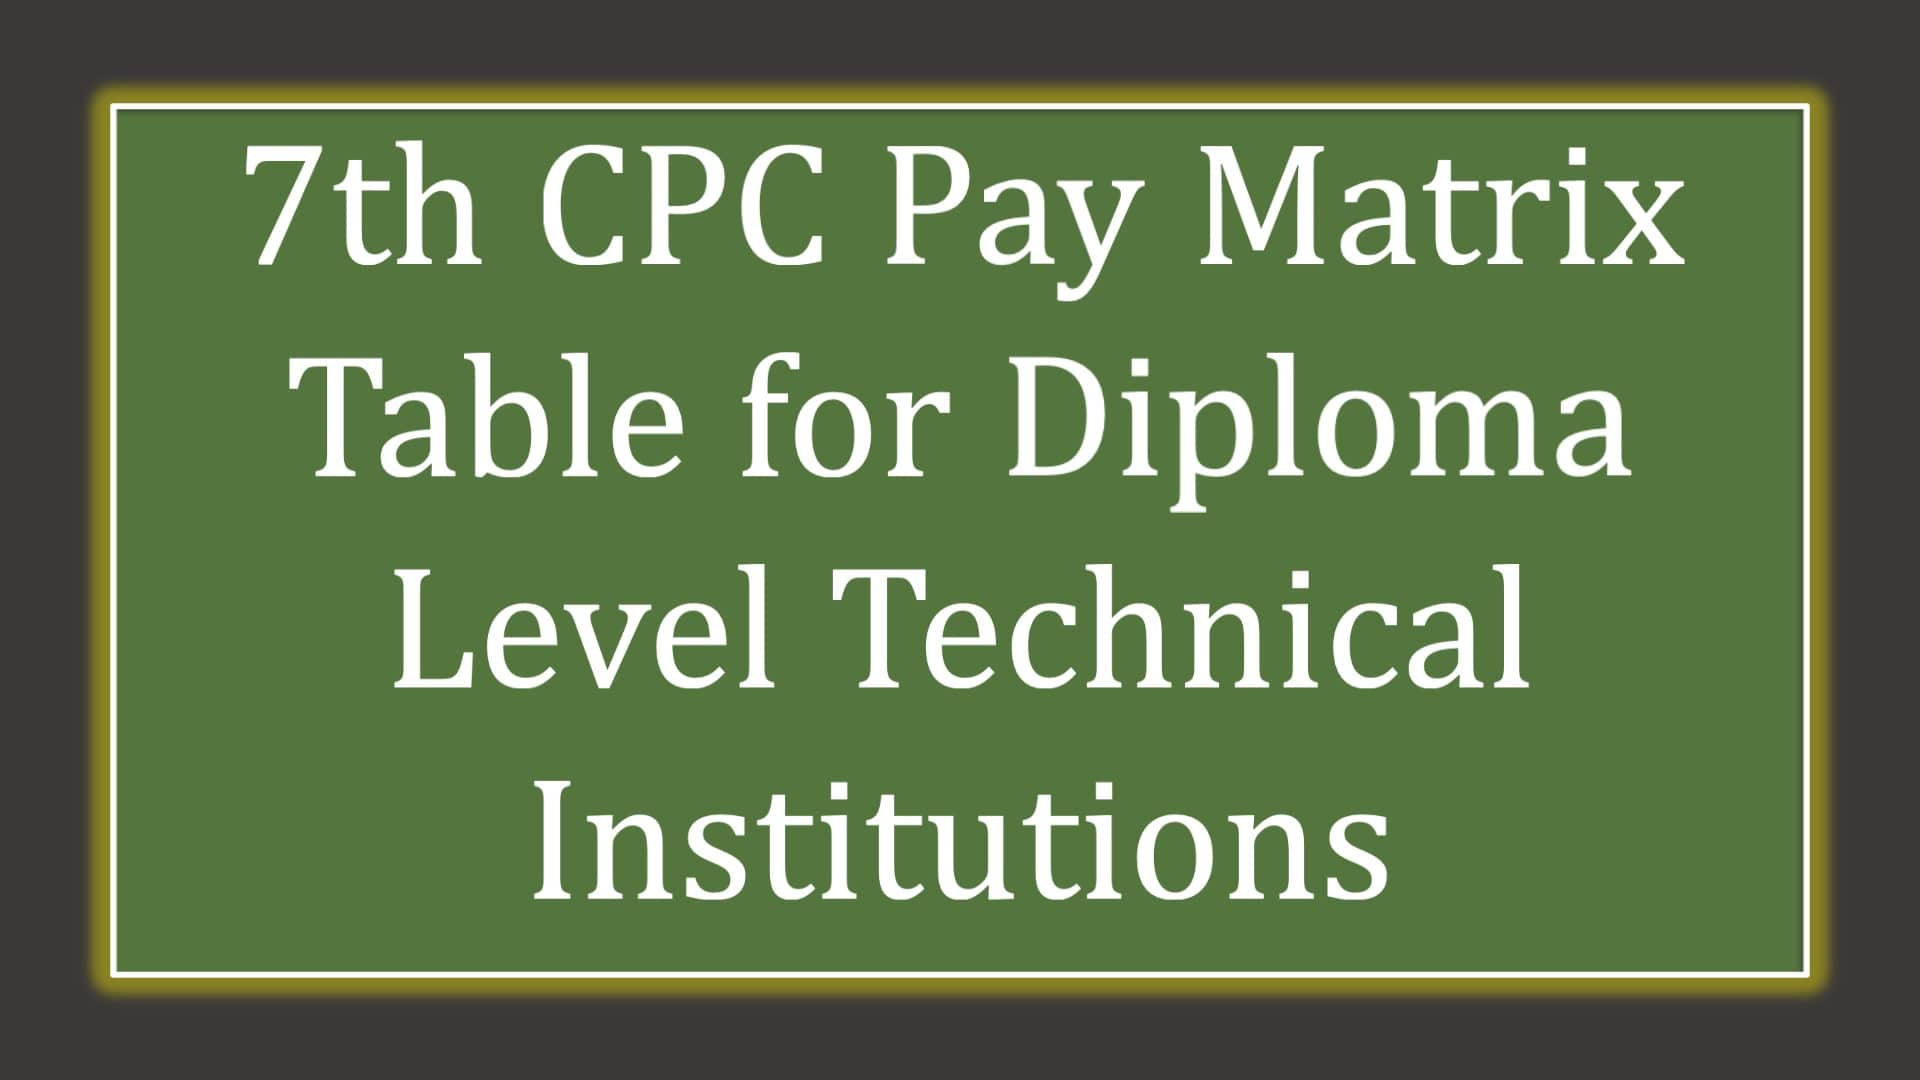 7th CPC Pay Matrix Table for Diploma Level Technical Institutions